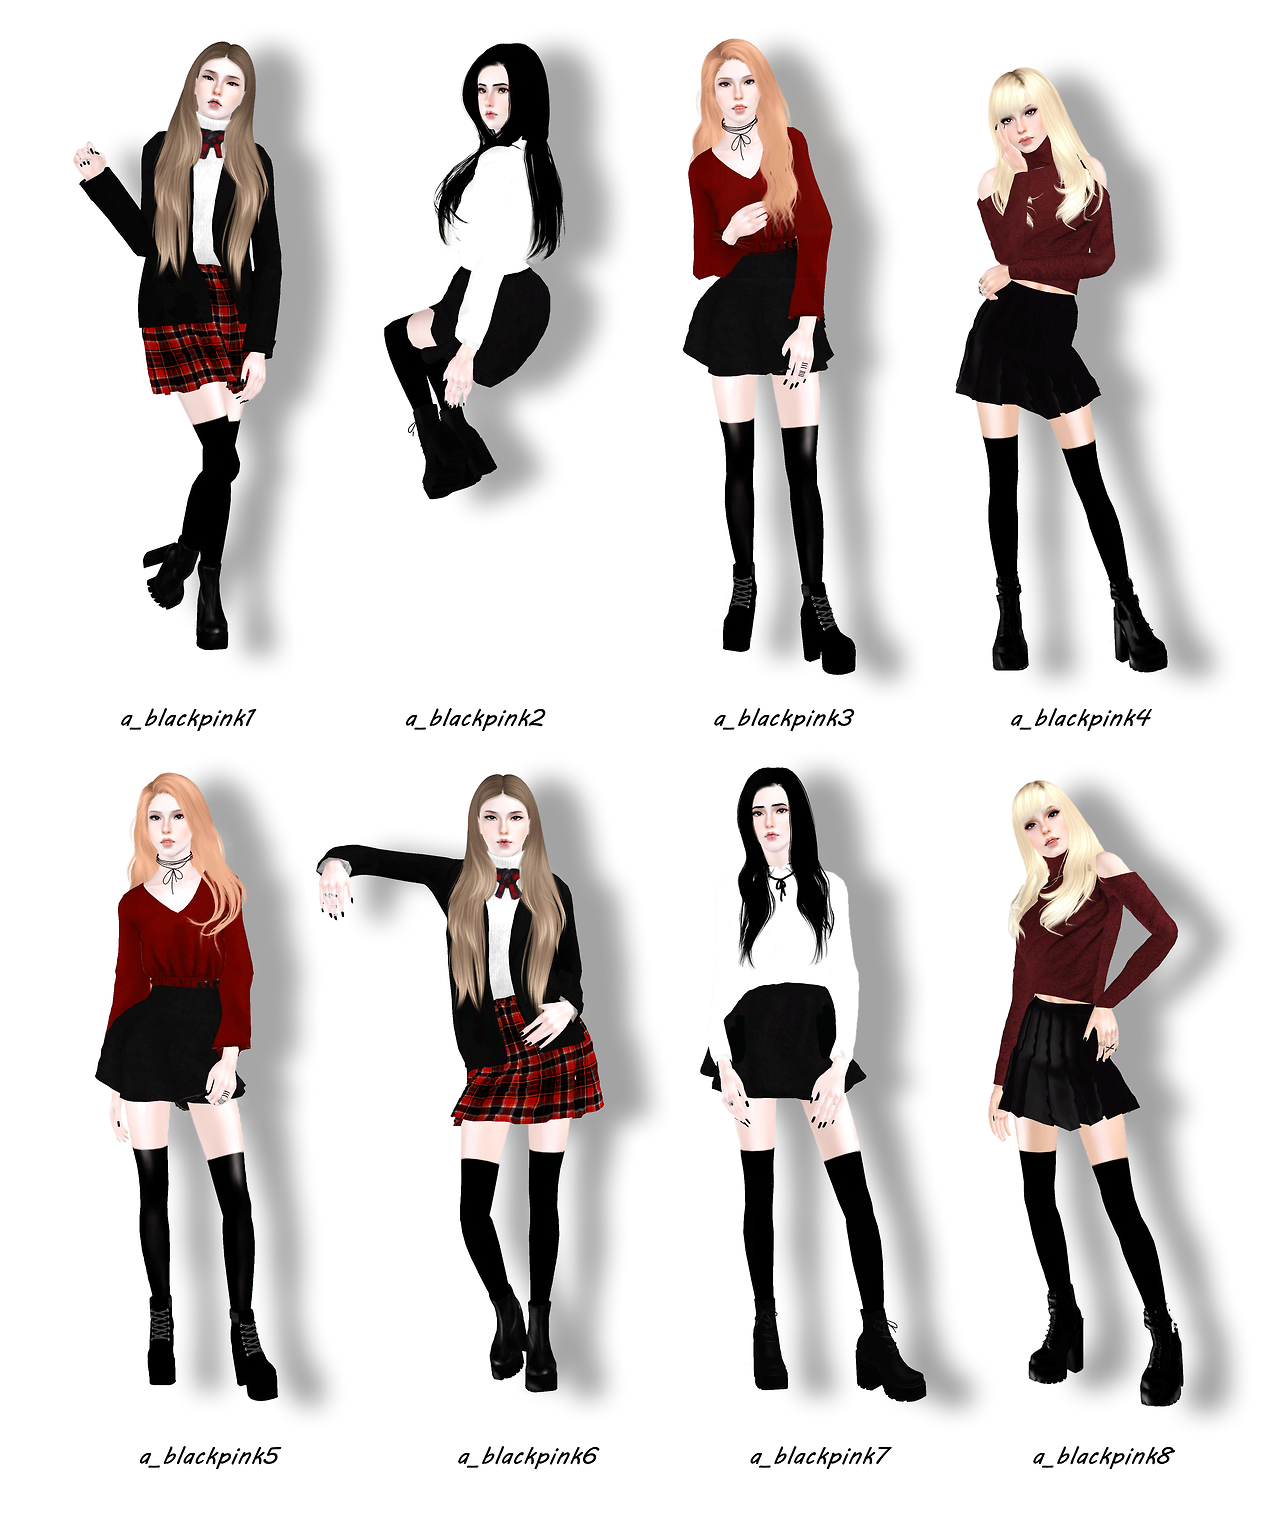 blinksims blackpink pose pack this pose pack was inspired by